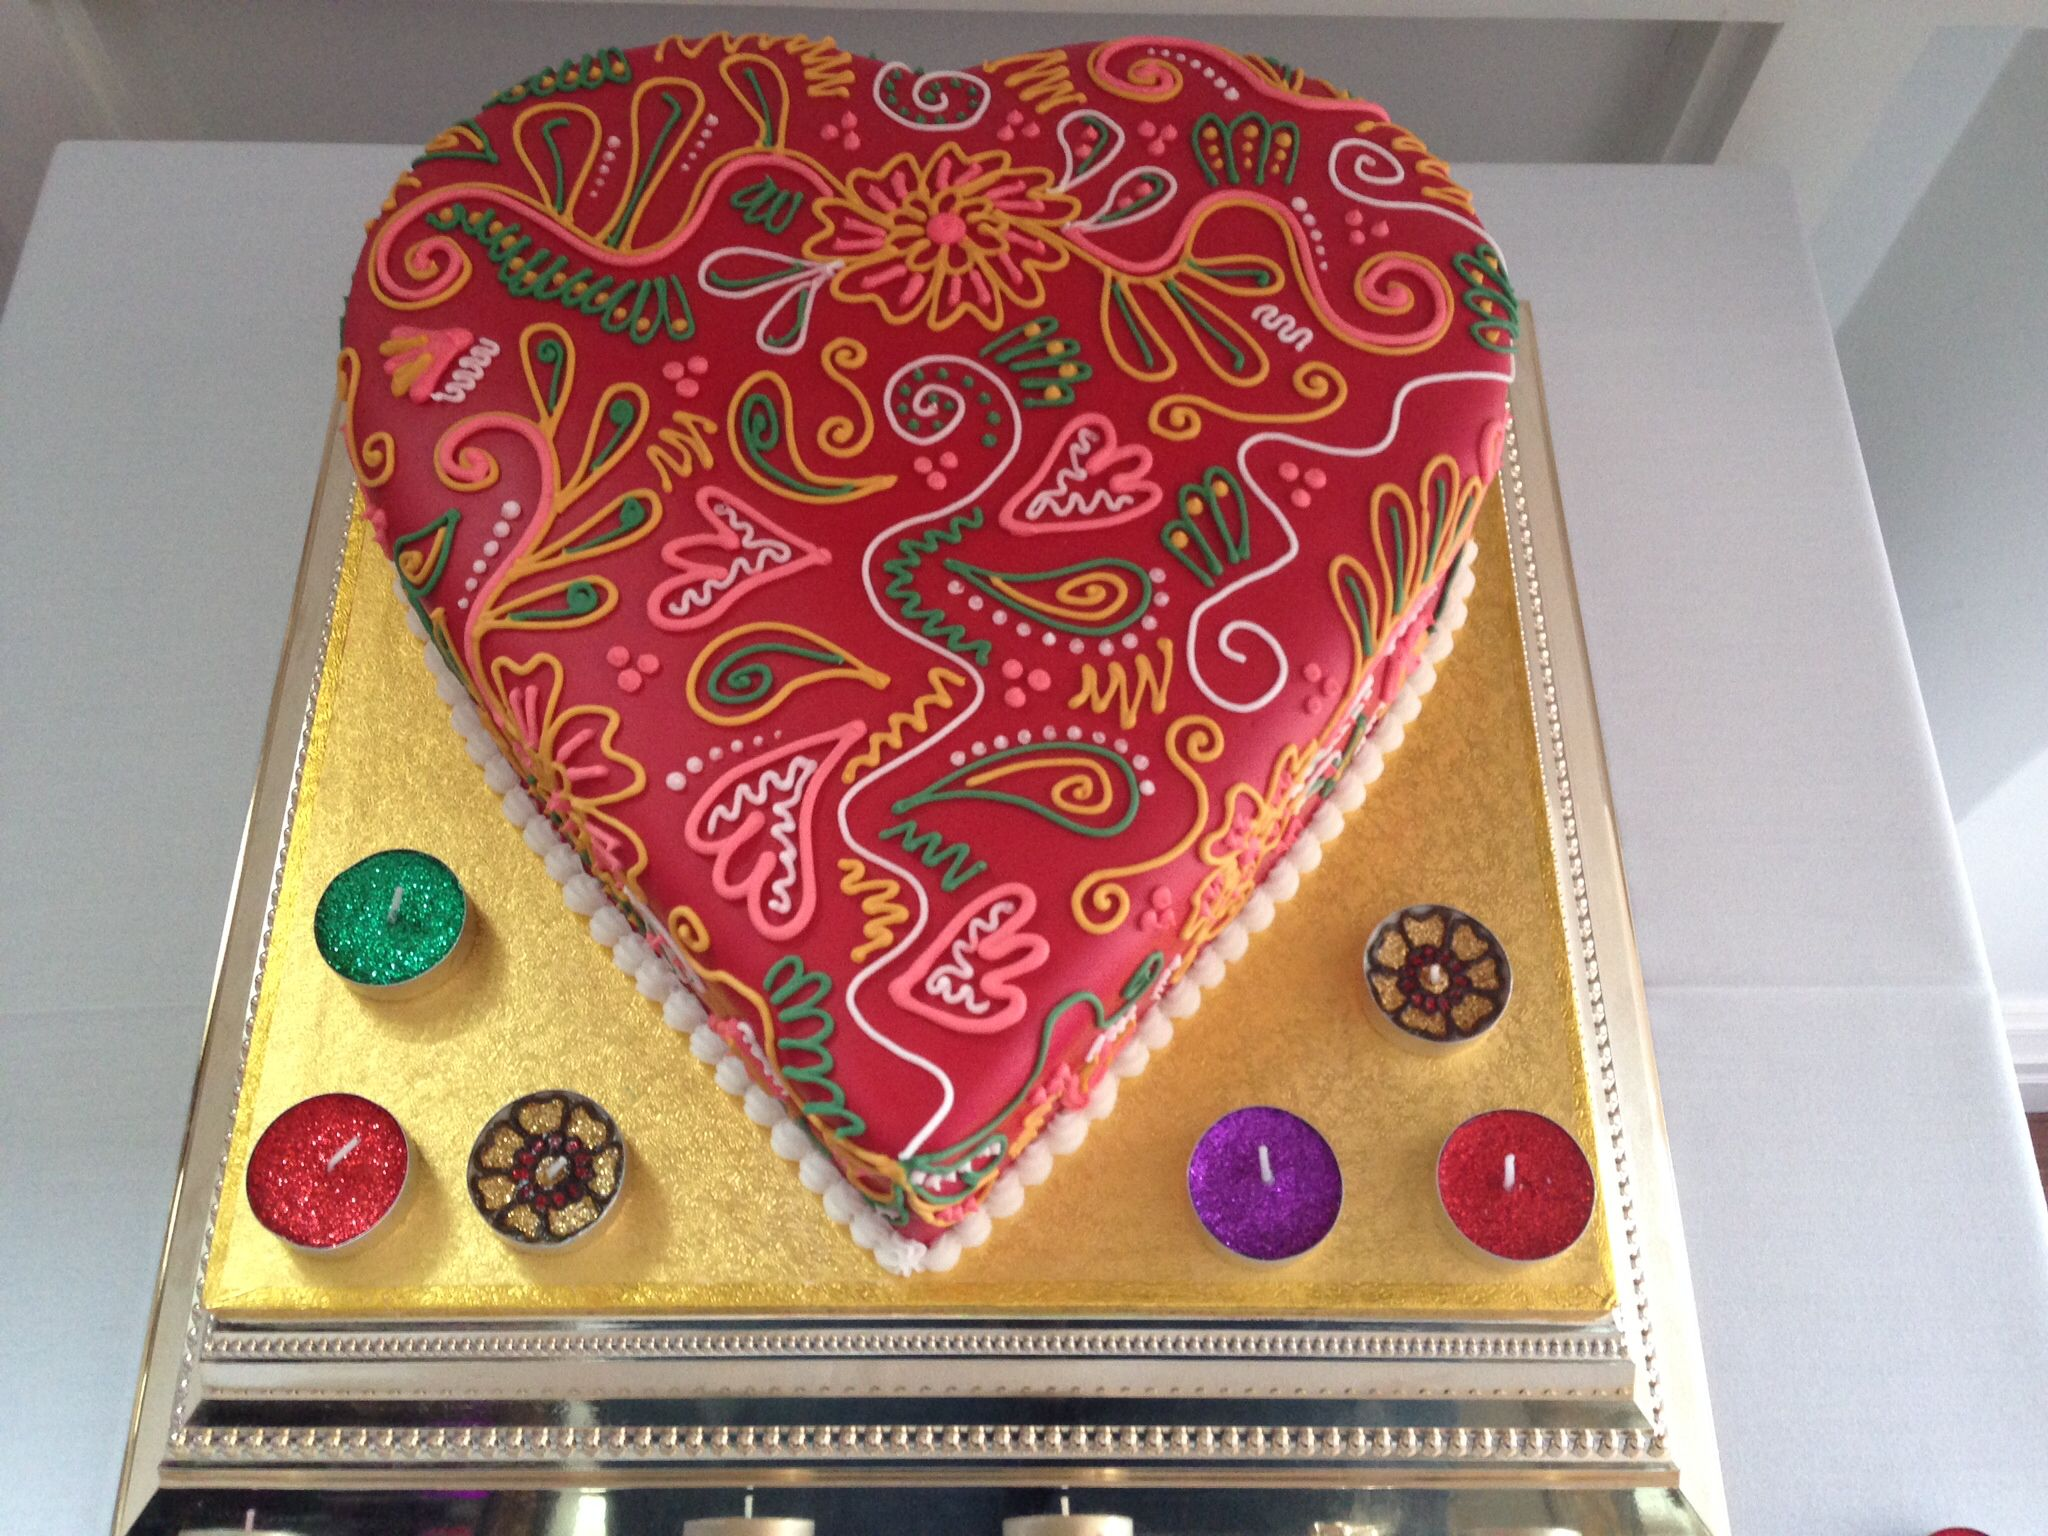 Paisley Mehndi Cake : Beautifully intricate piped design on a heart shaped cake for